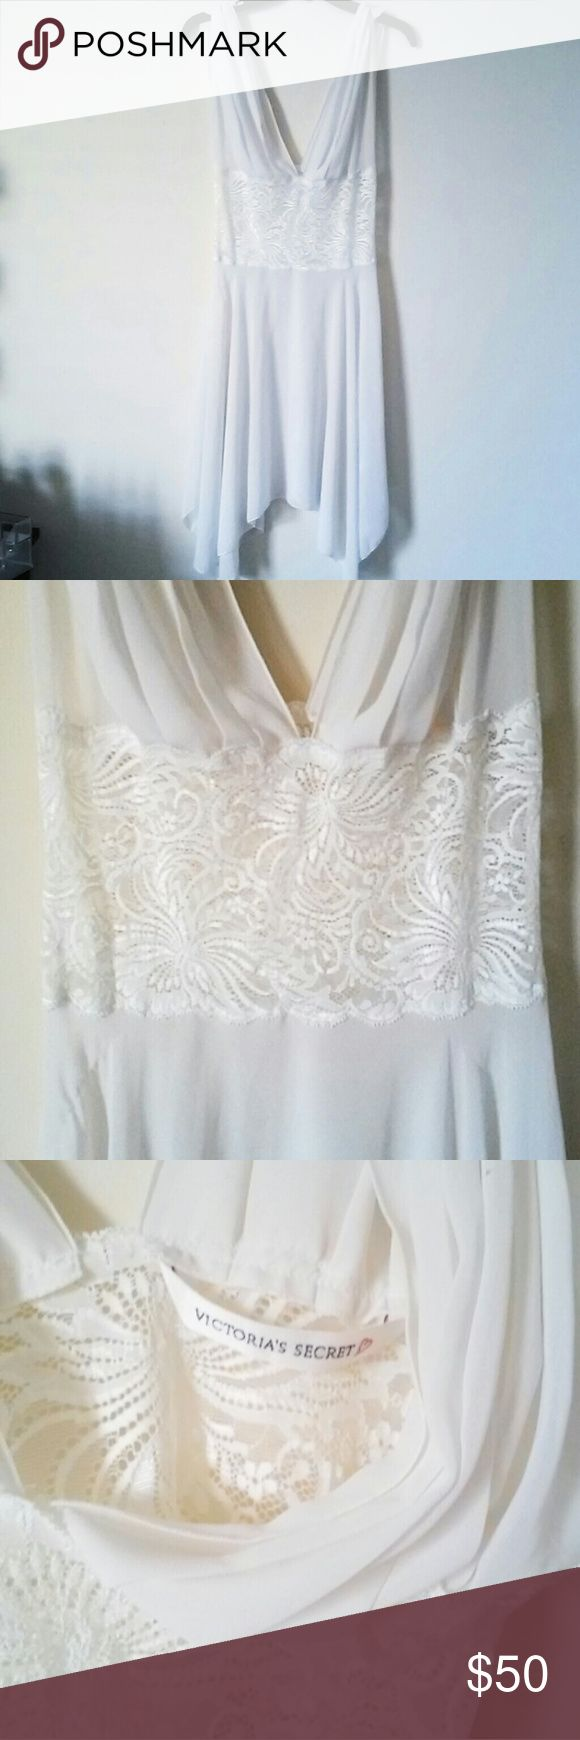 Victoria's Secret vintage grecian lace dress/slip Be am  angel in this Victoria's Secret grecian lace dress.  ♡ gathered sleeves ♡ Romantic see through lace on the waist-line ♡ beautiful semi-sheer chiffon, between white and creme ♡ flowing asymmetrical hemmed bodice  ♡ older, out of stock piece  No trades, reasonable offers considered Victoria's Secret Intimates & Sleepwear Chemises & Slips